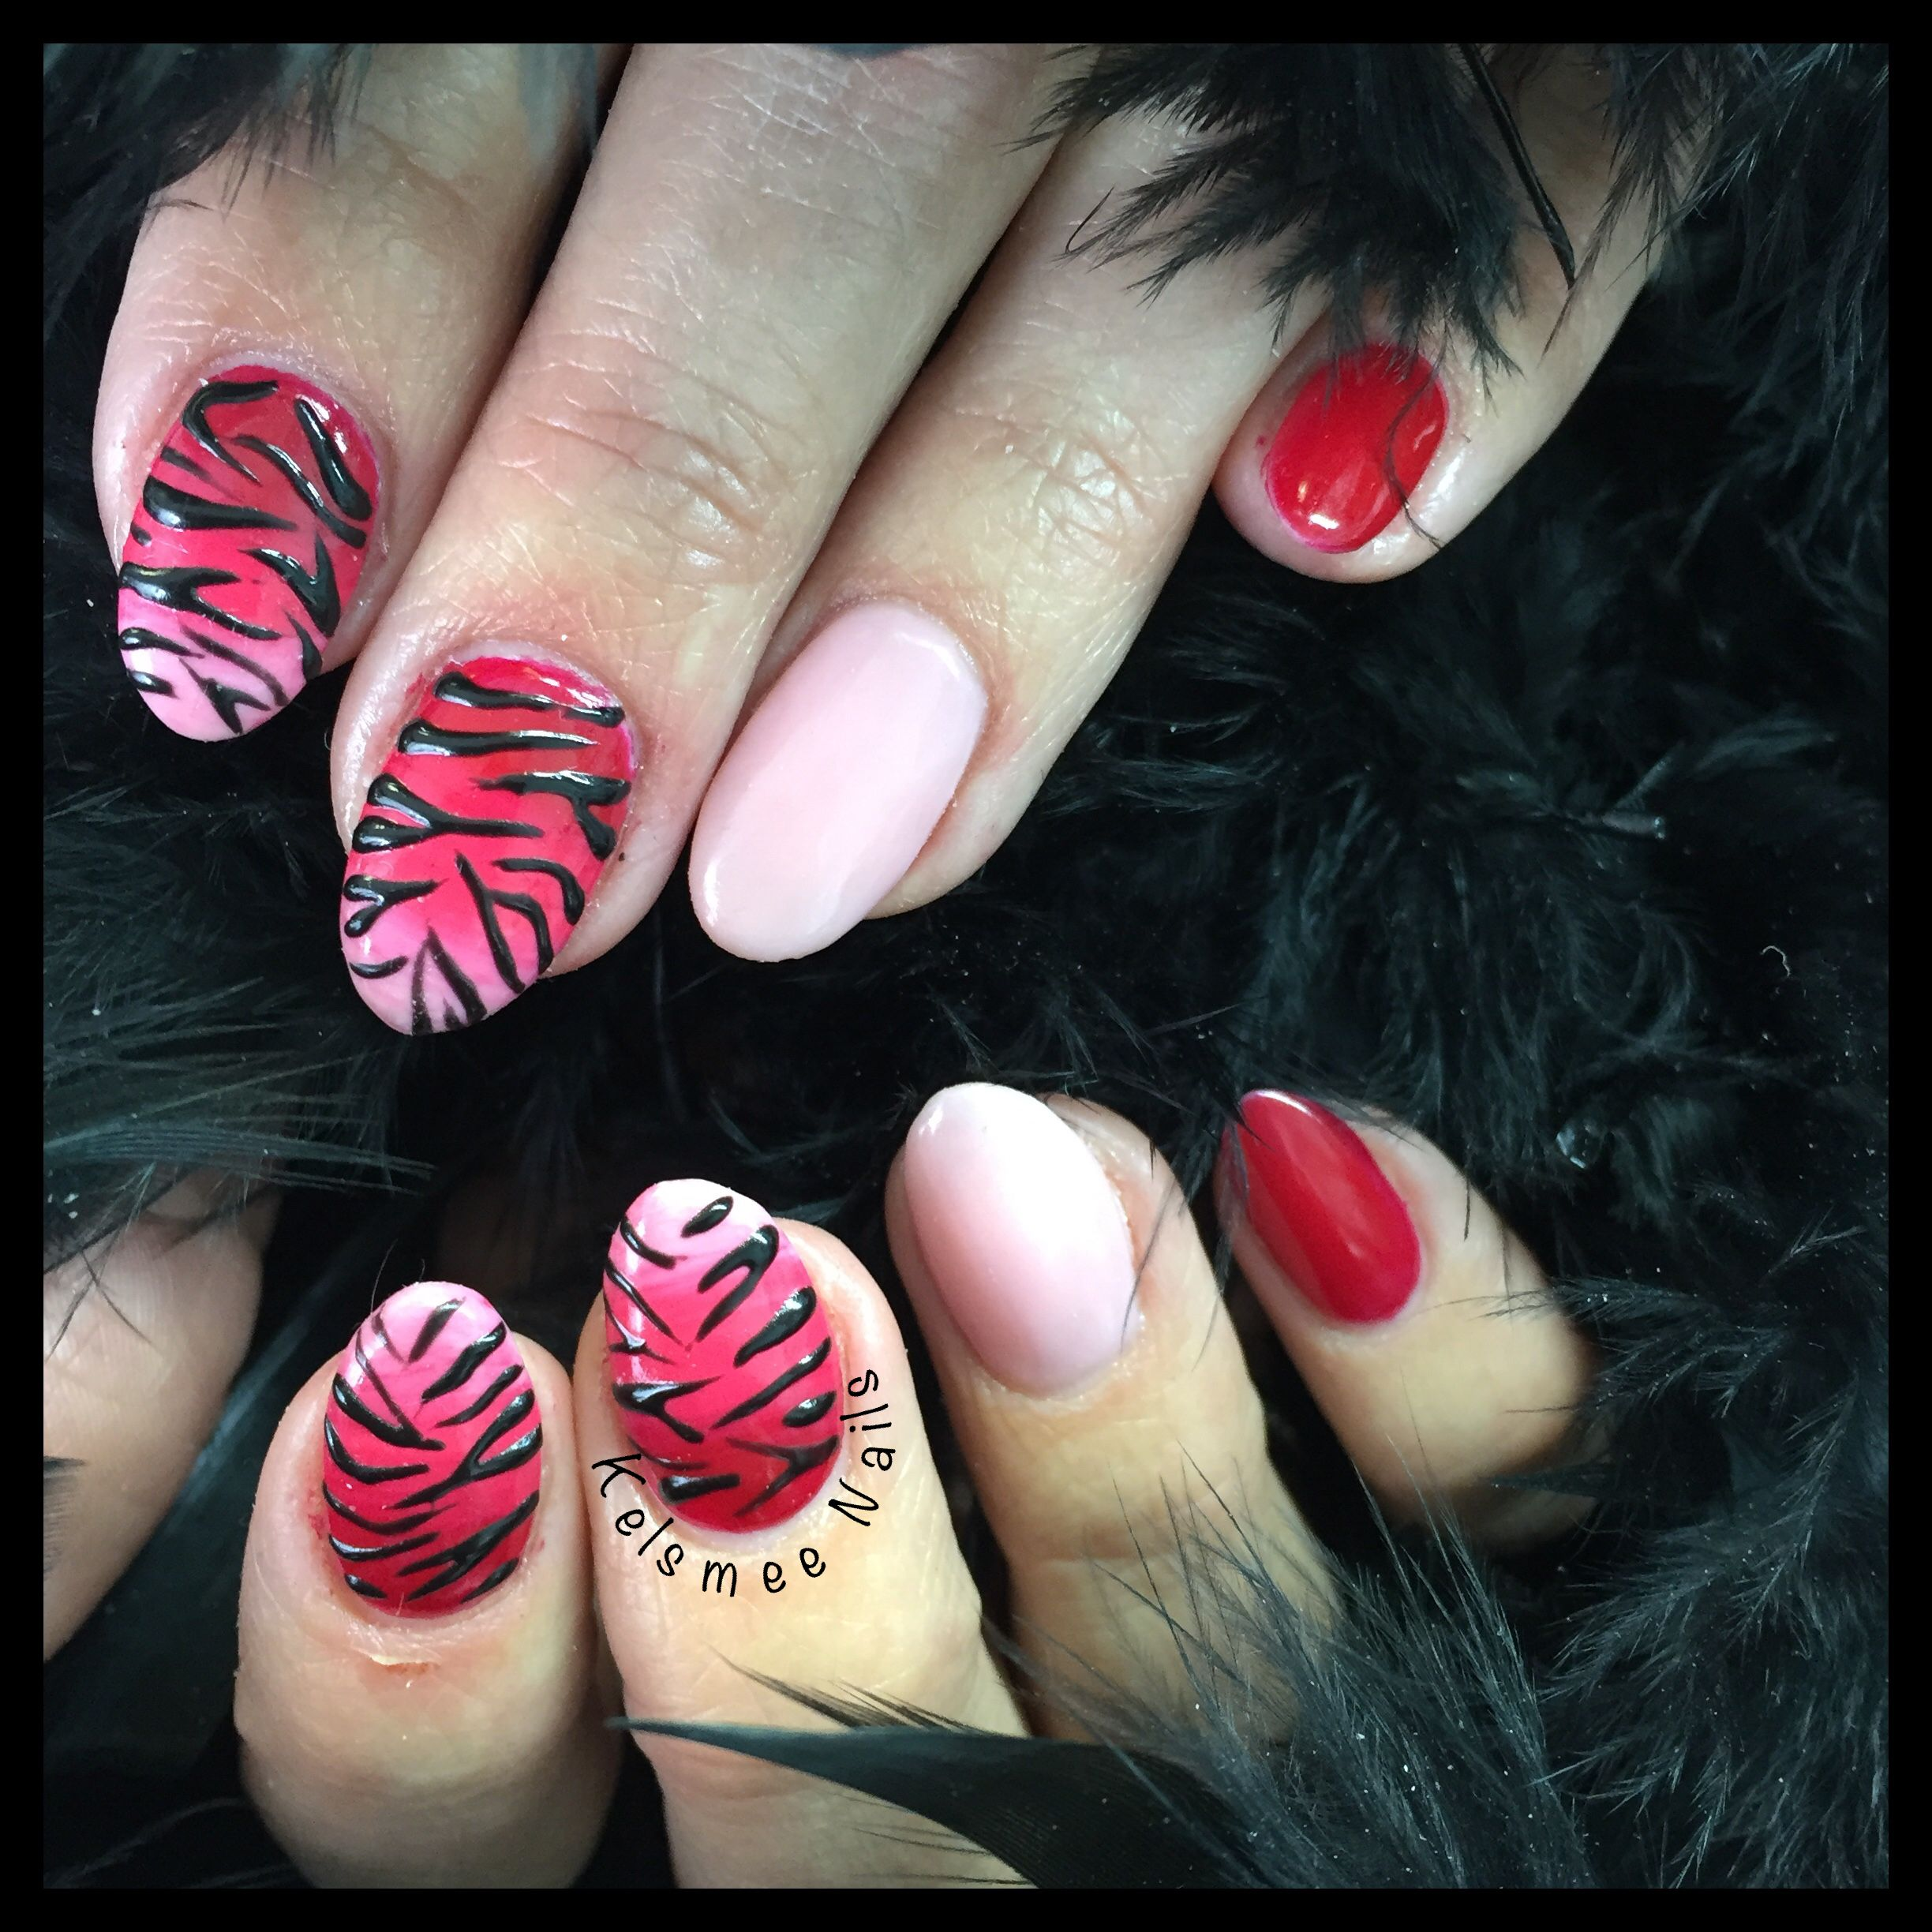 acrylic nails with gelopolish overlay en gelpaint, red pink nails with zebra nailart